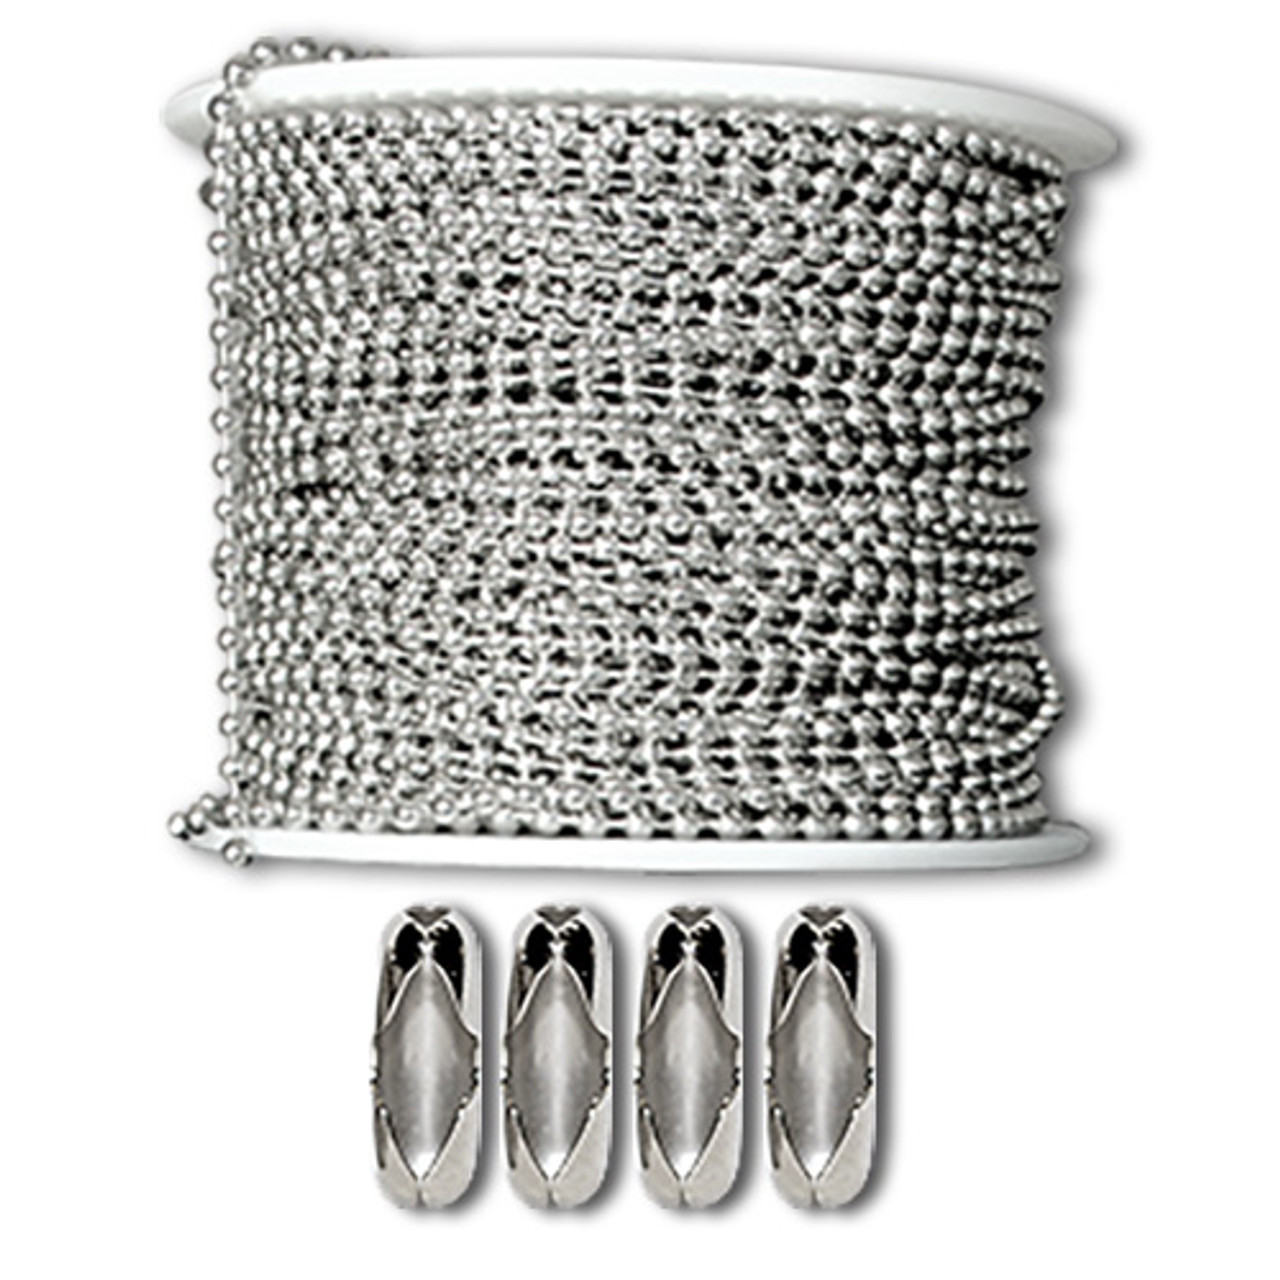 1.8mm diameter sterling silver ball chain / bead chain used for jewelry crafting and other diy applications. Made in the USA and sold at low factory direct prices.